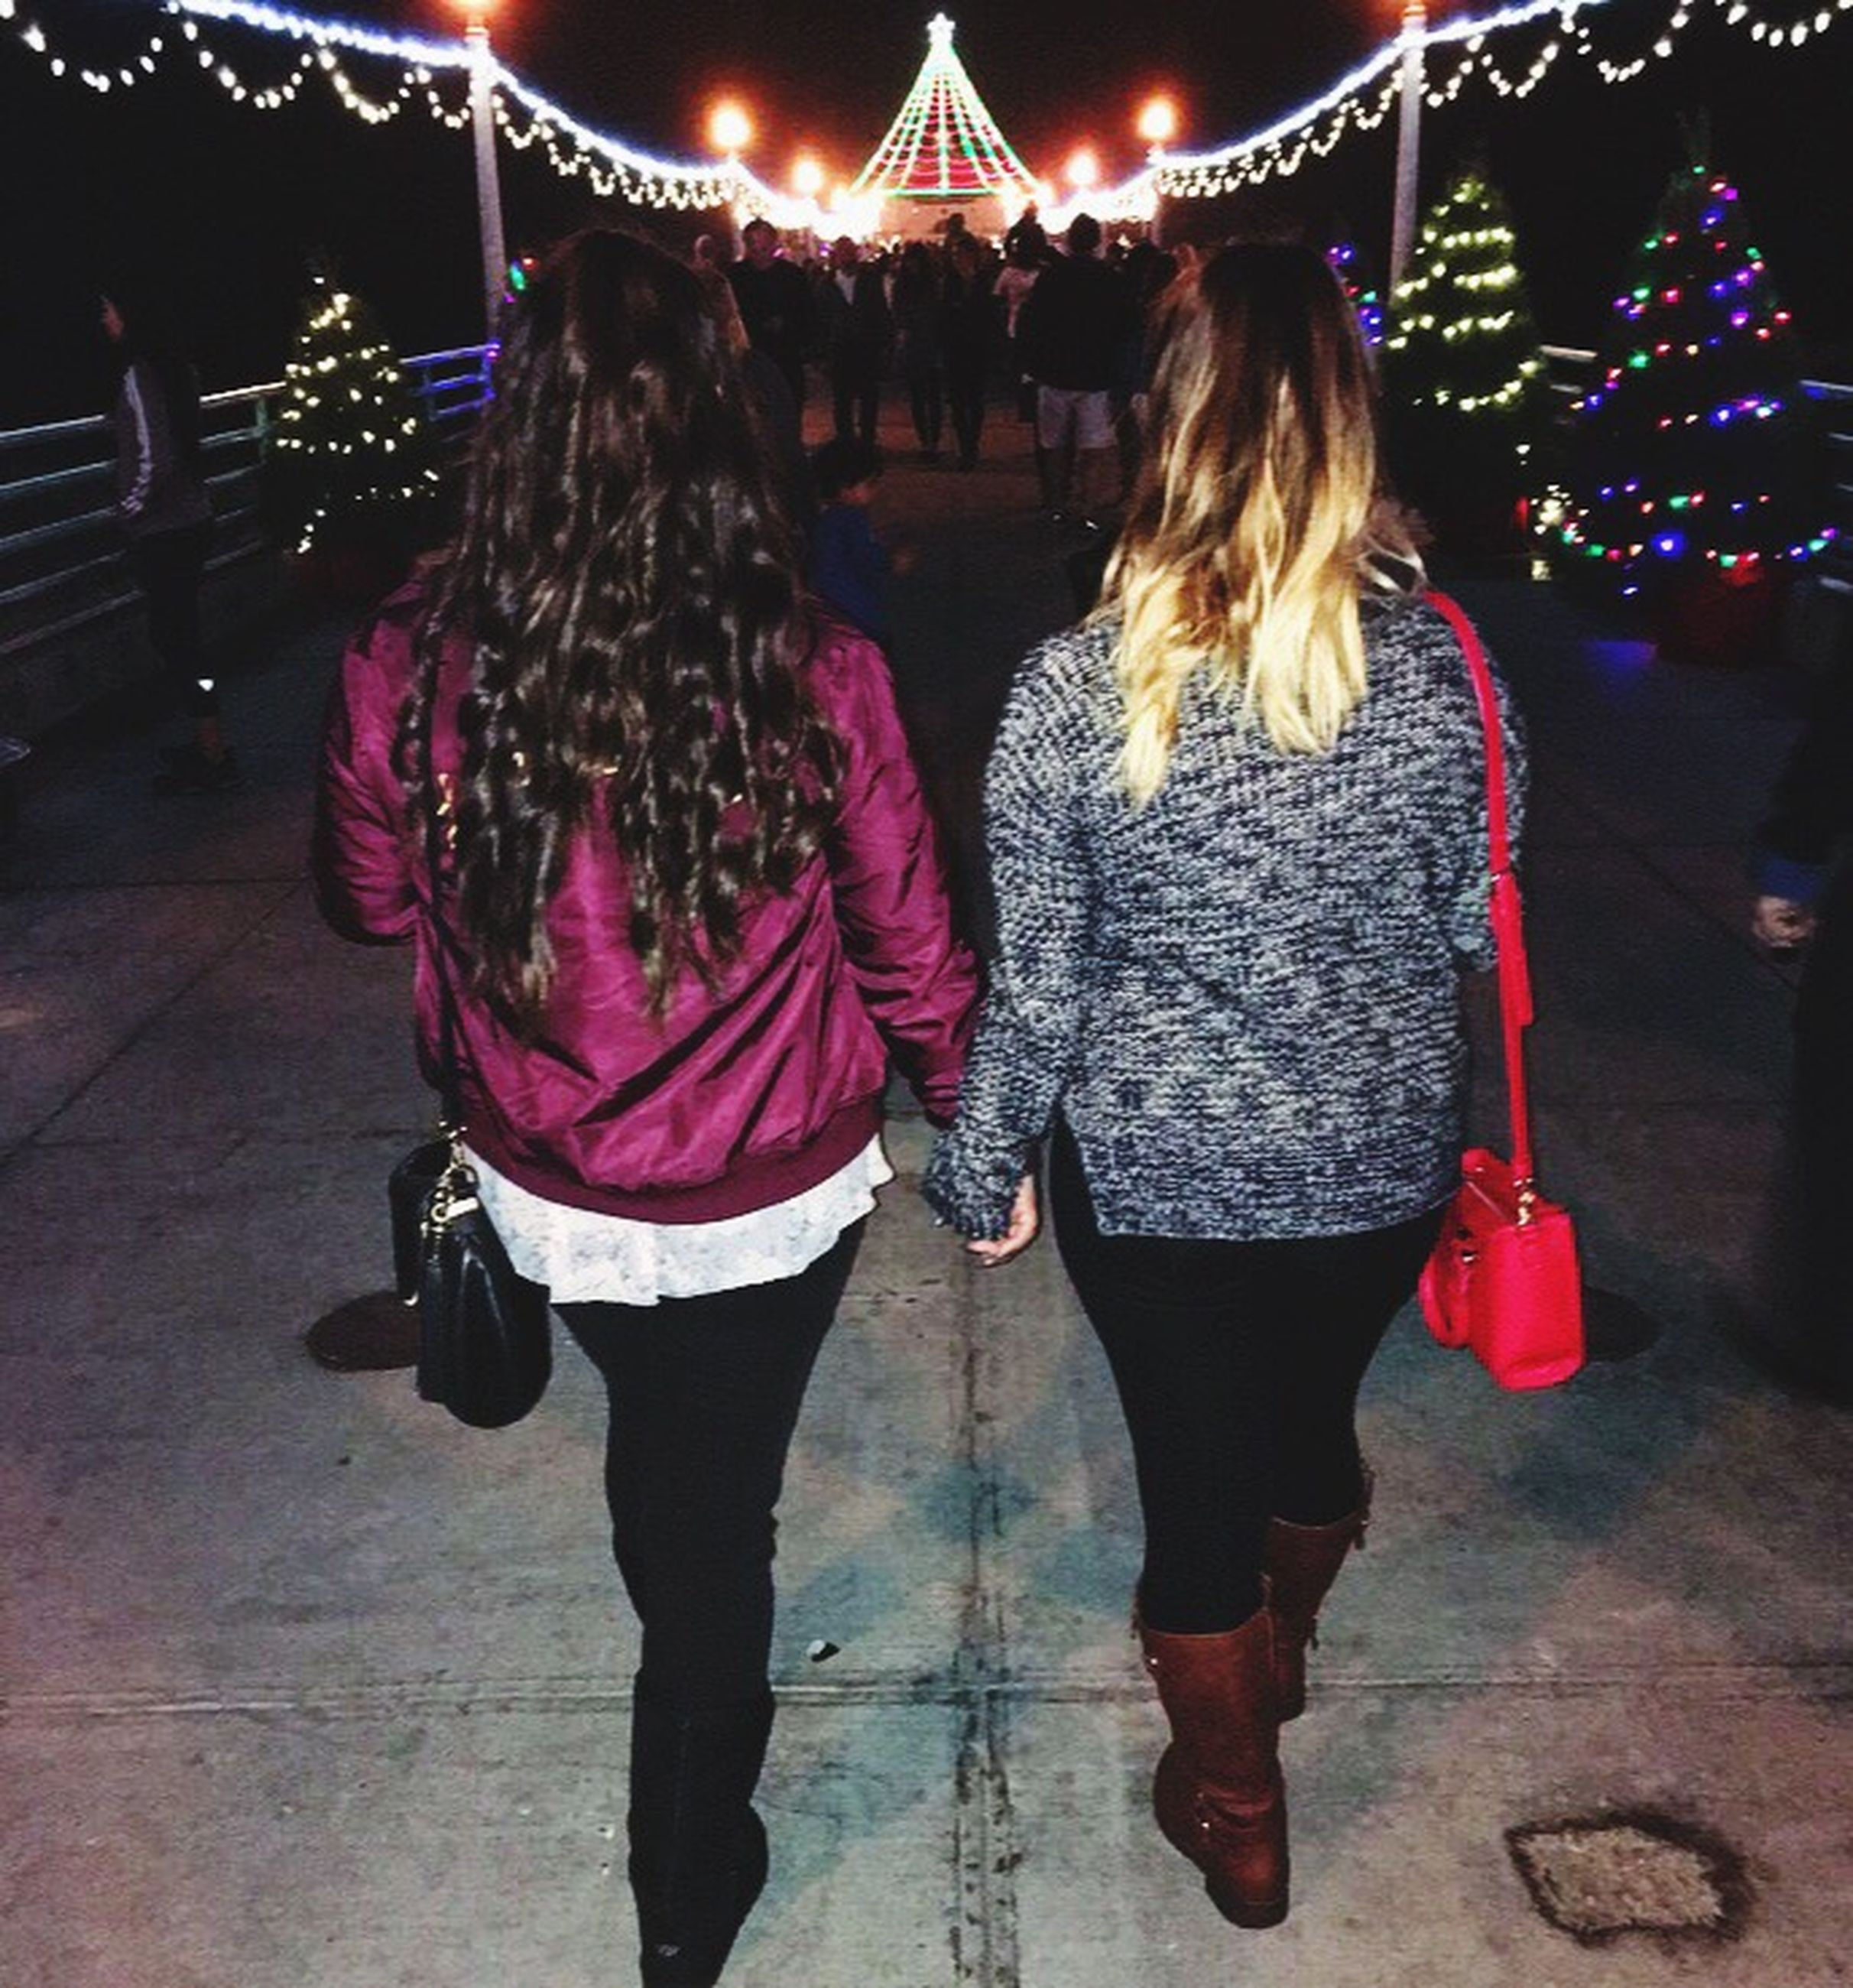 night, two people, rear view, friendship, christmas, adults only, happiness, winter, illuminated, people, togetherness, christmas lights, full length, young adult, ice rink, outdoors, young women, adult